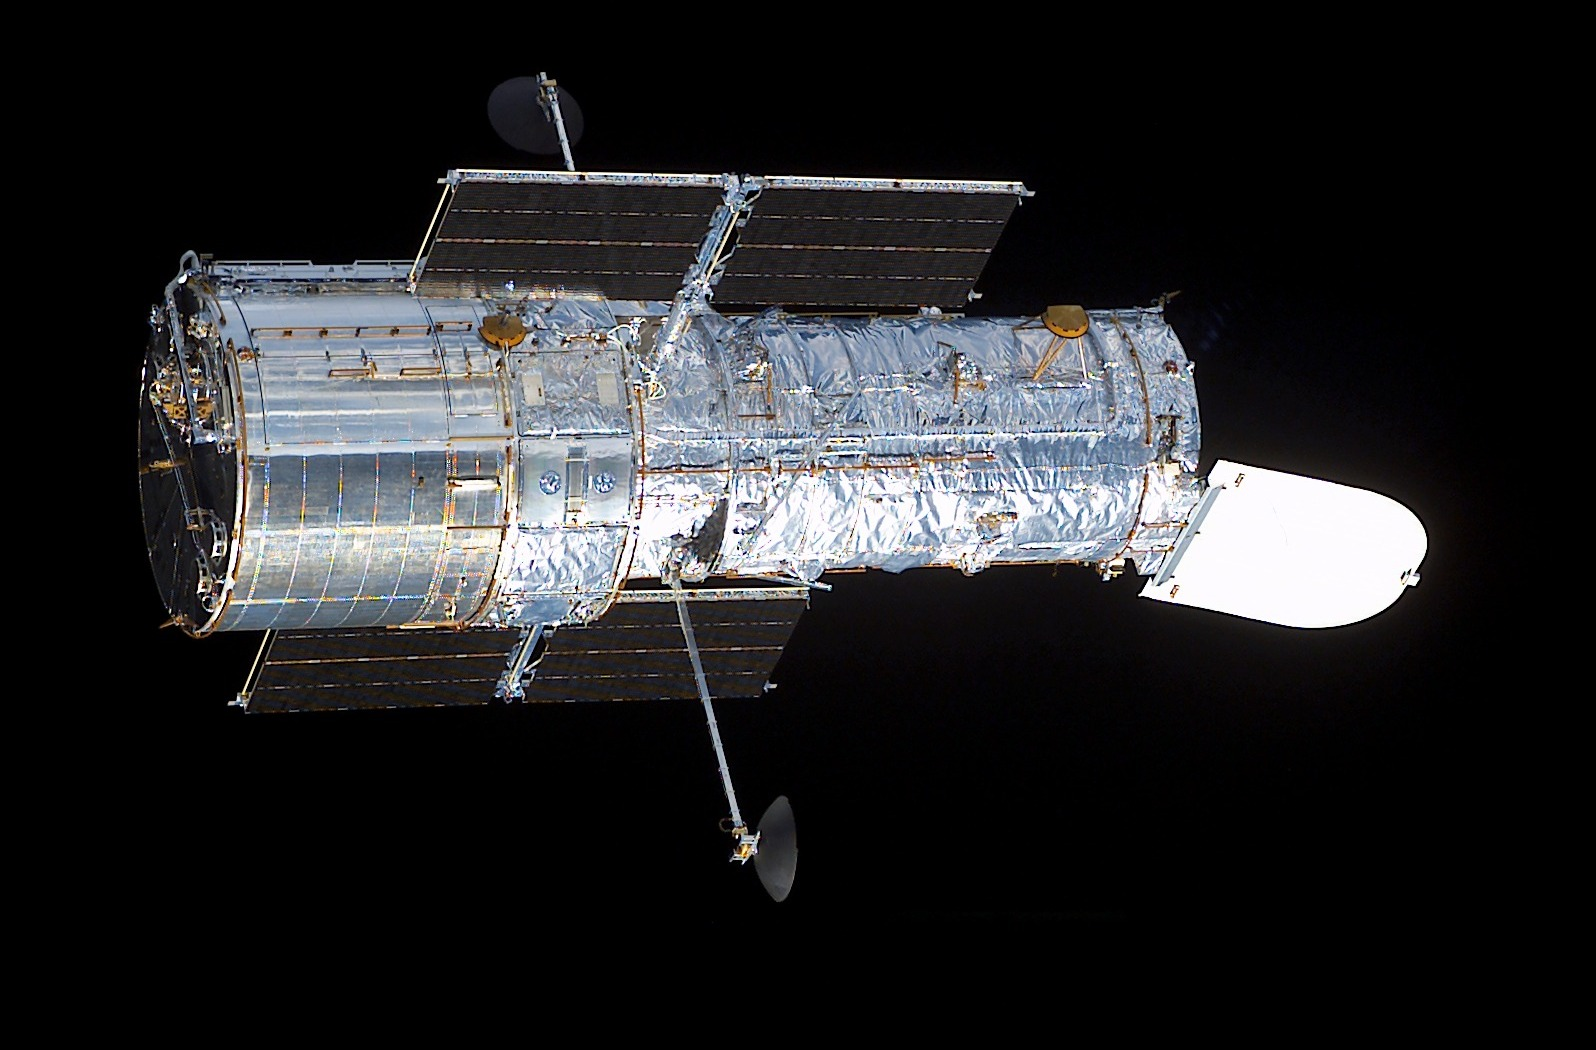 Hubble Space Telescope after Restoration in March 2002